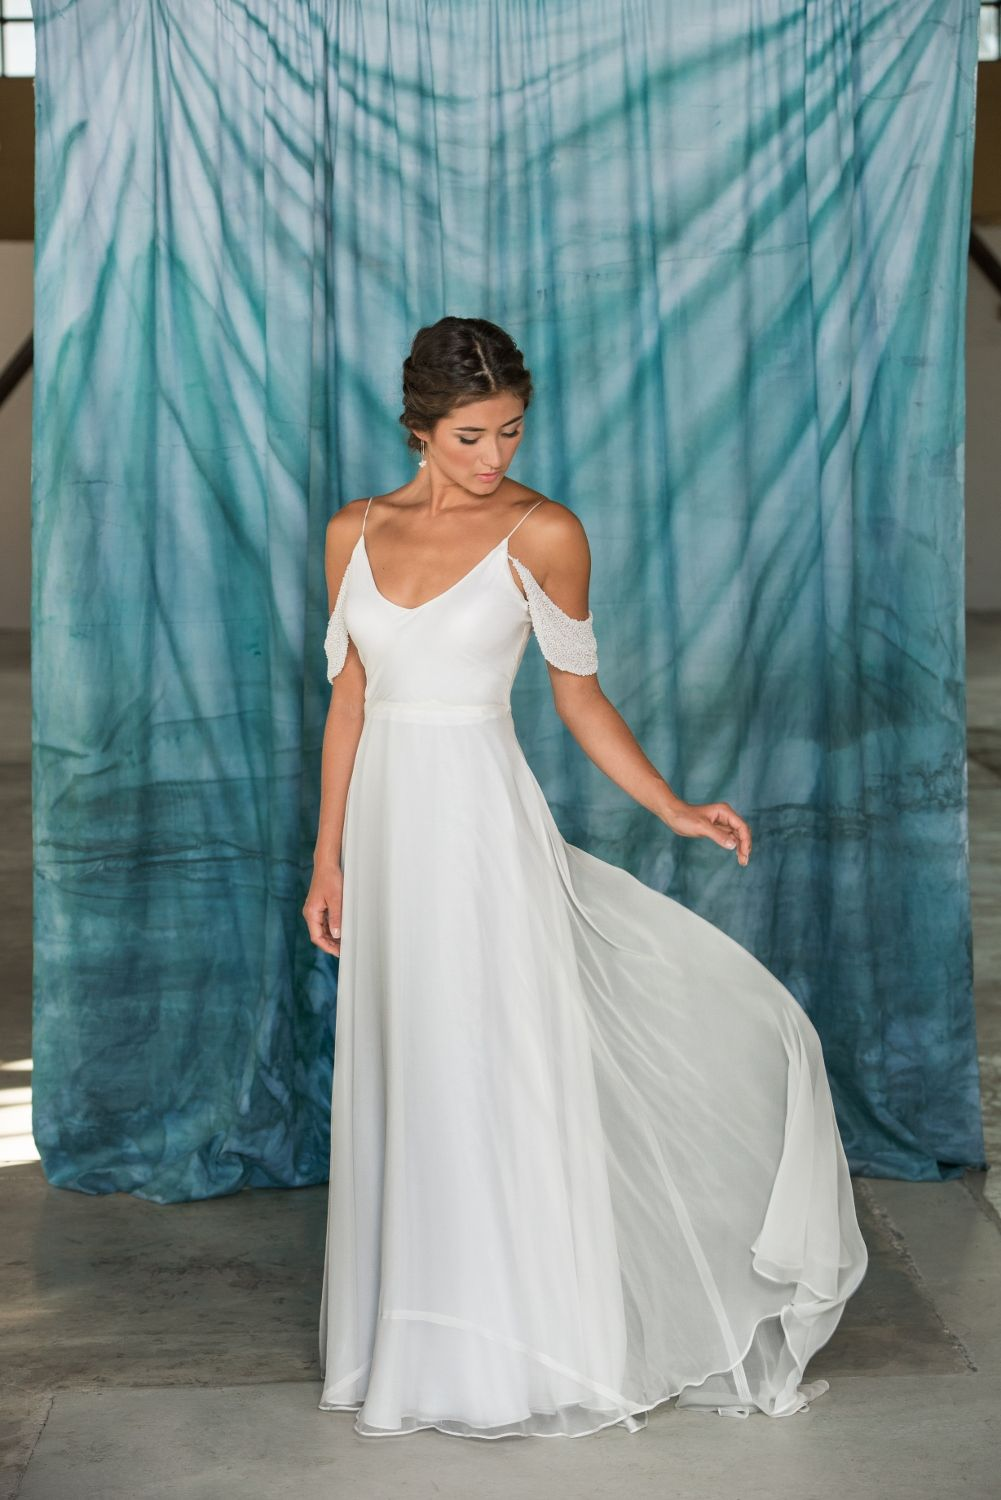 Wedding dresses with cowgirl boots  Belle  Pure Magnolia  wedding decoration ideas  Pinterest